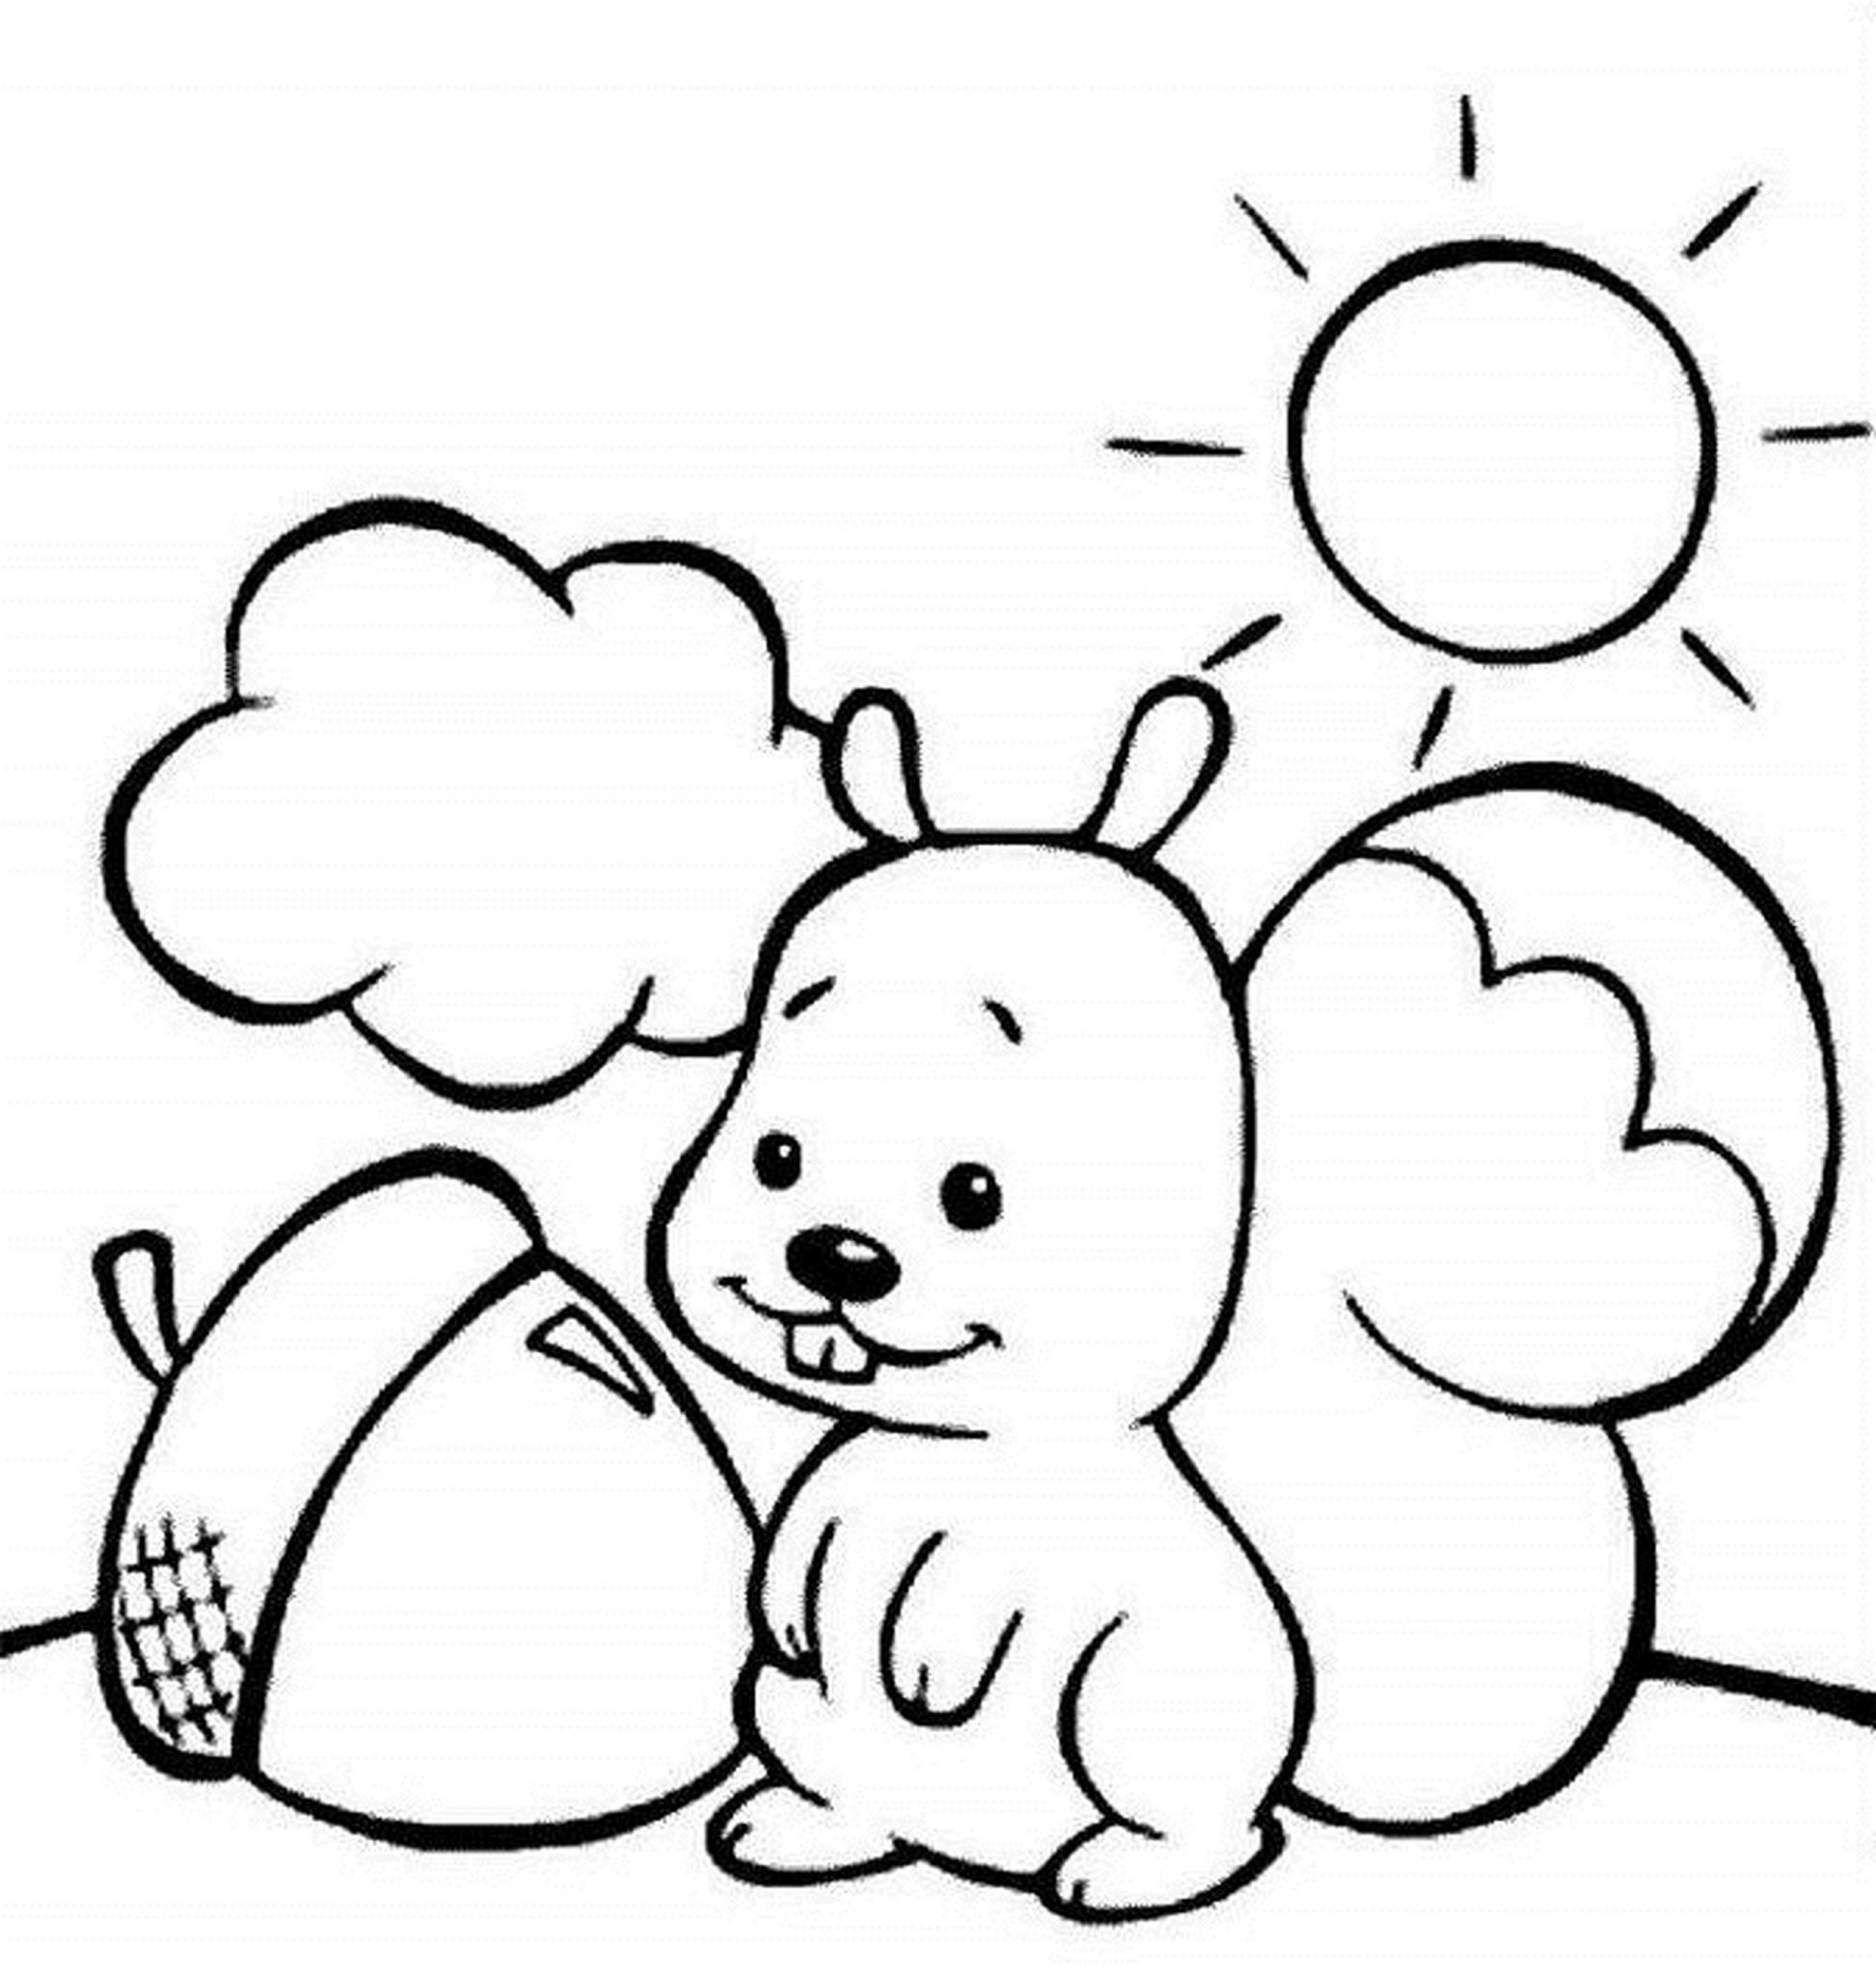 Print & Download - Fall Coloring Pages & Benefit of Coloring for Kids